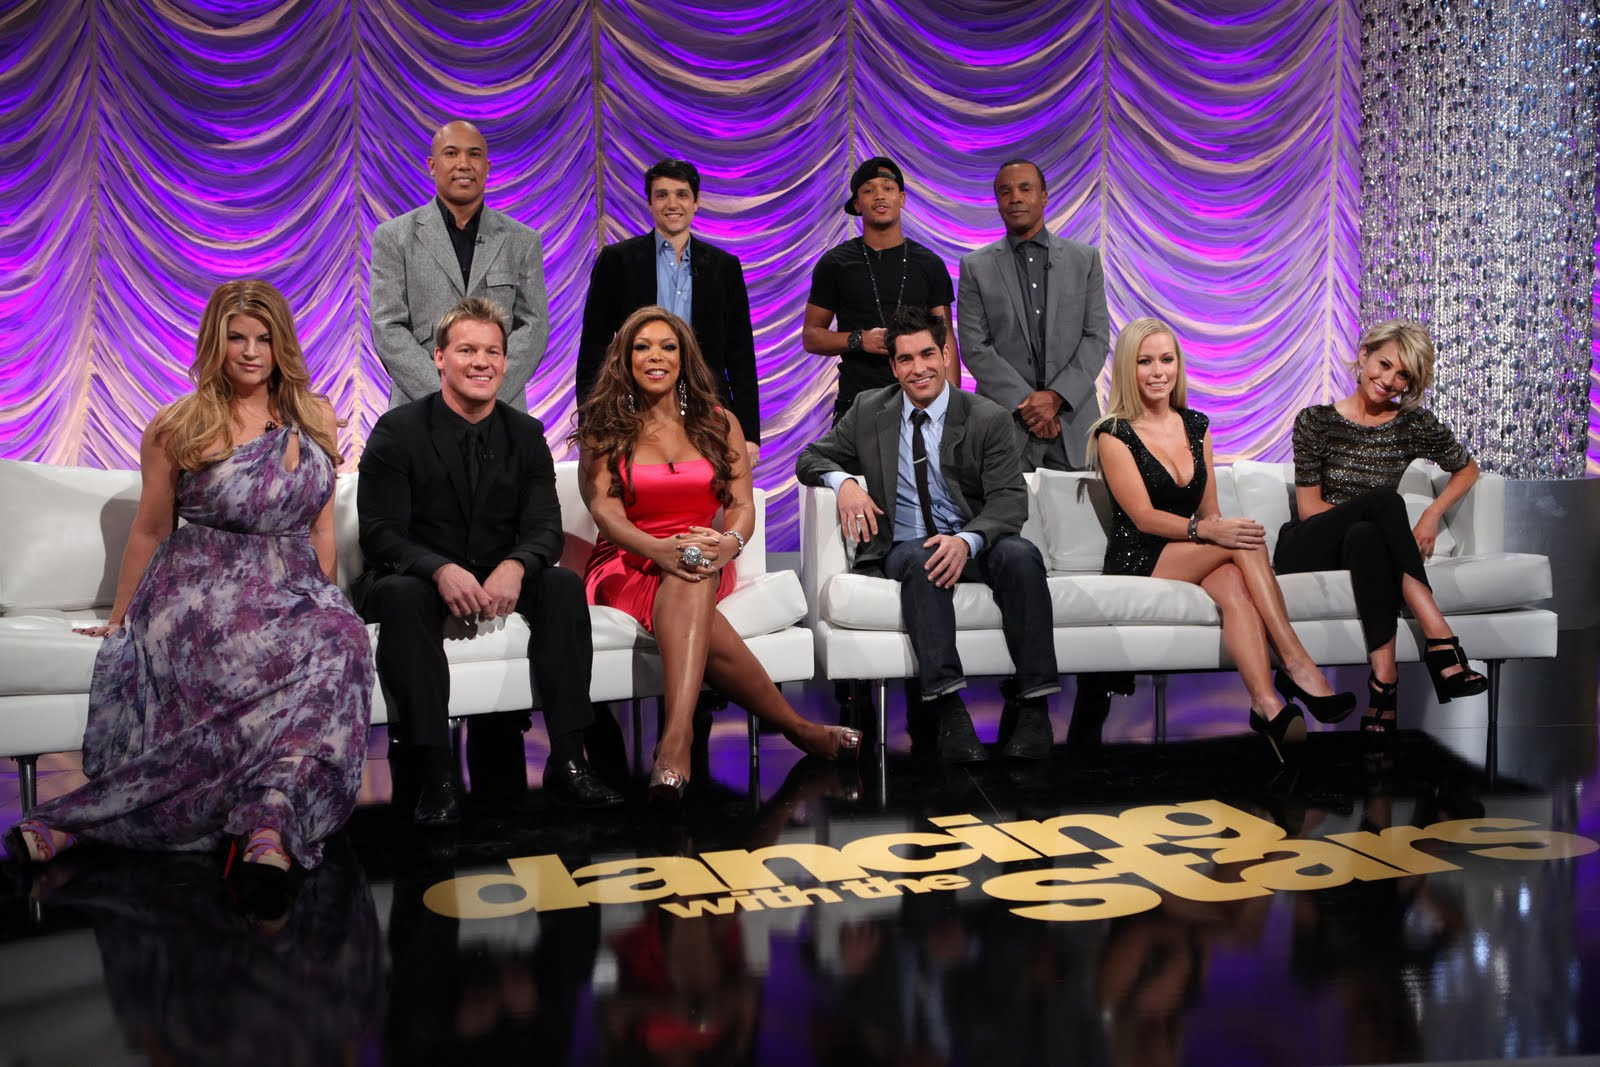 DANCING WITH THE STARS 2011 Cast: Which Celebs Made the DWTS 13 Lineup ...